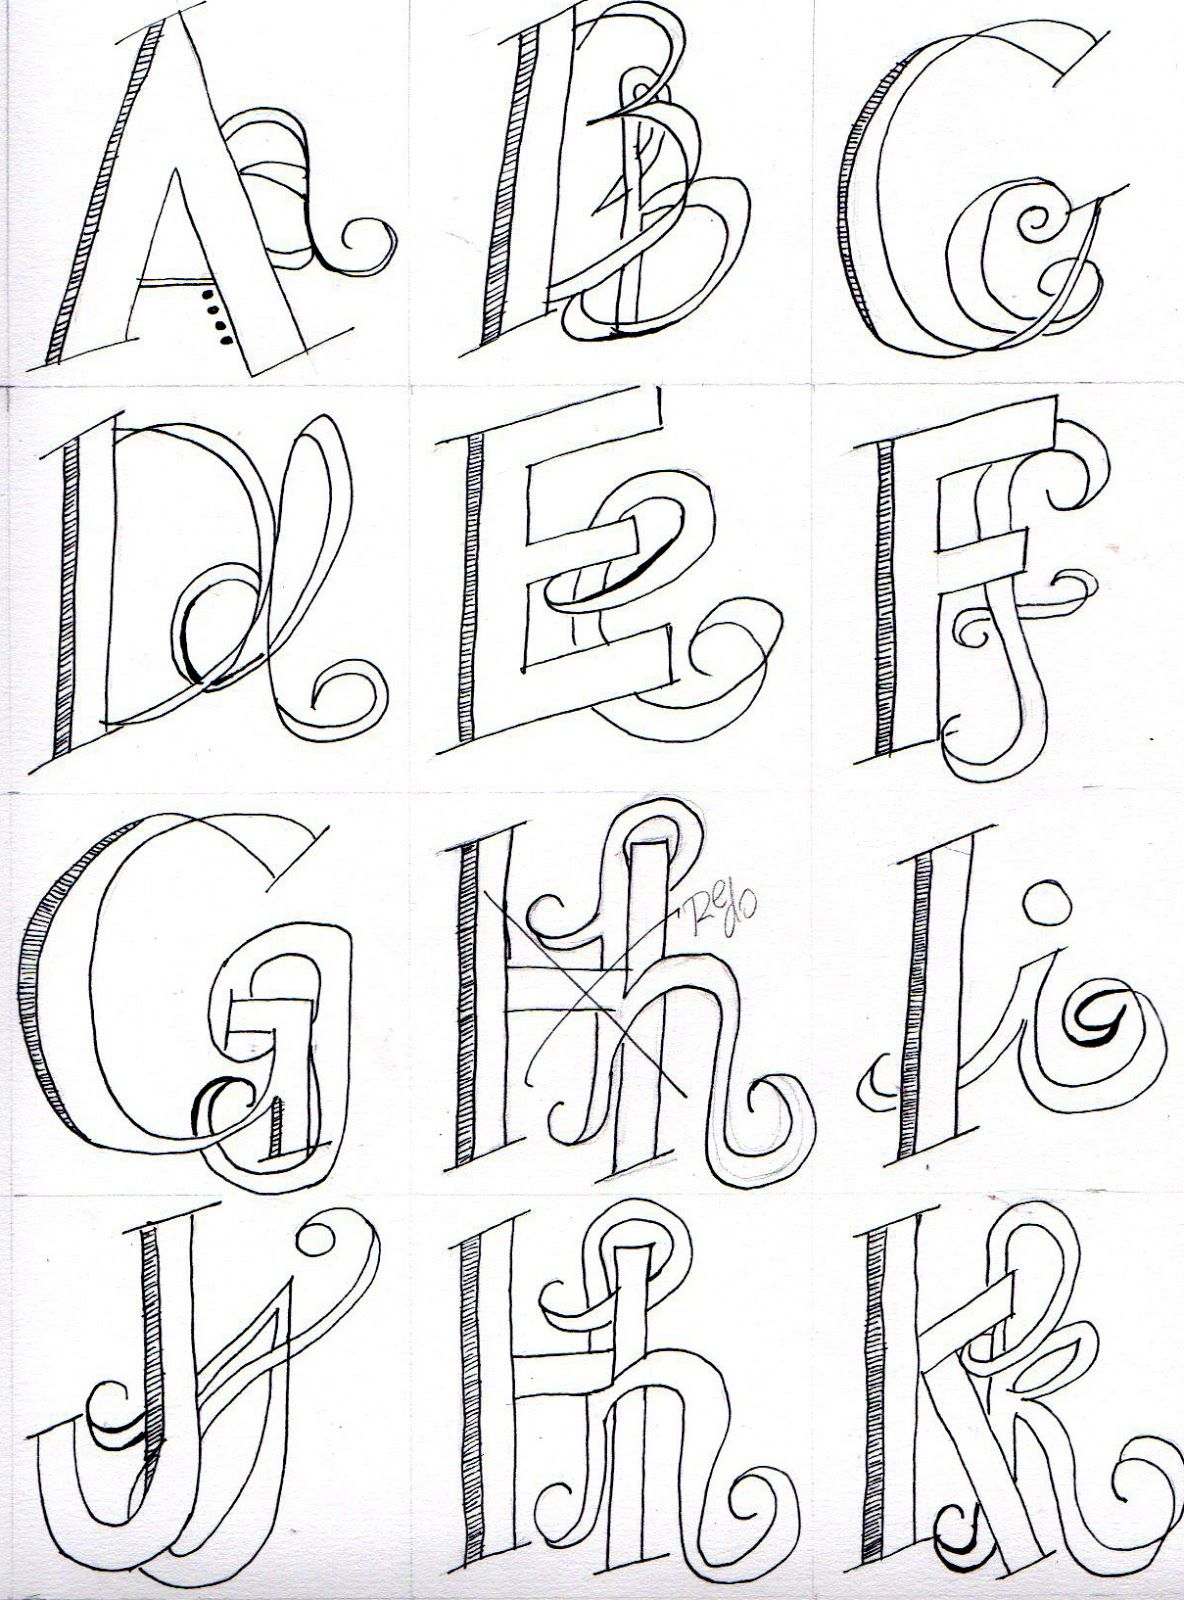 Creative Explorer: alaw 2013 (With images) | Doodle ...